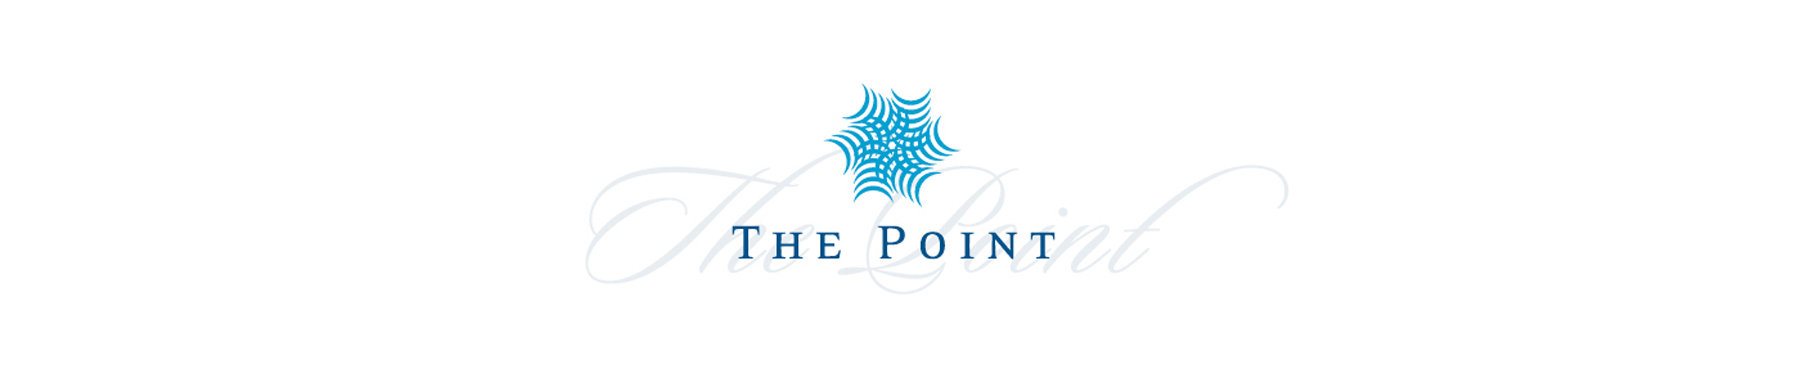 The Point banner on white background